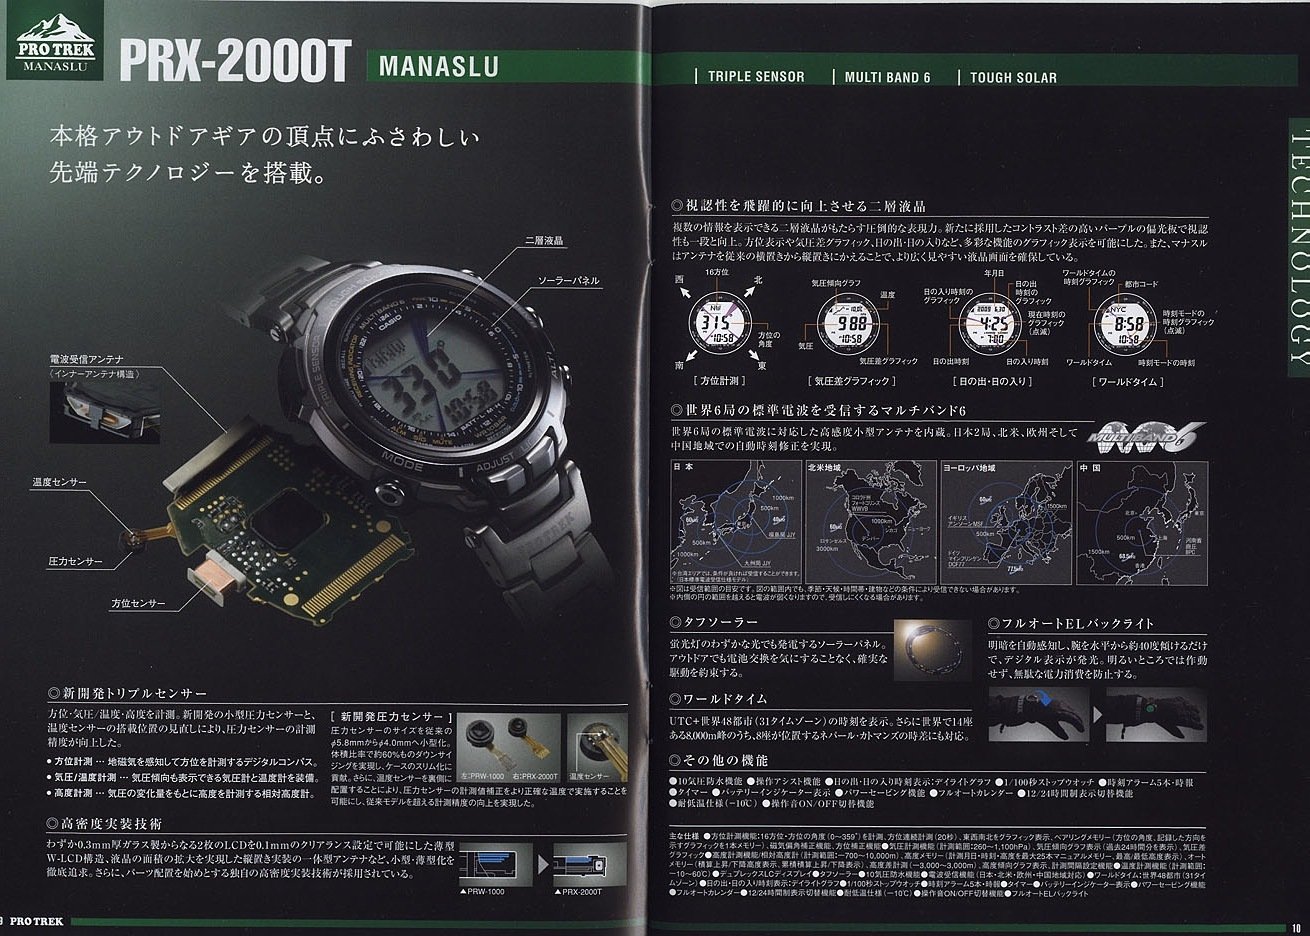 Casio-Pro-Trek-Collection-Summer-2009-Page-6.jpg